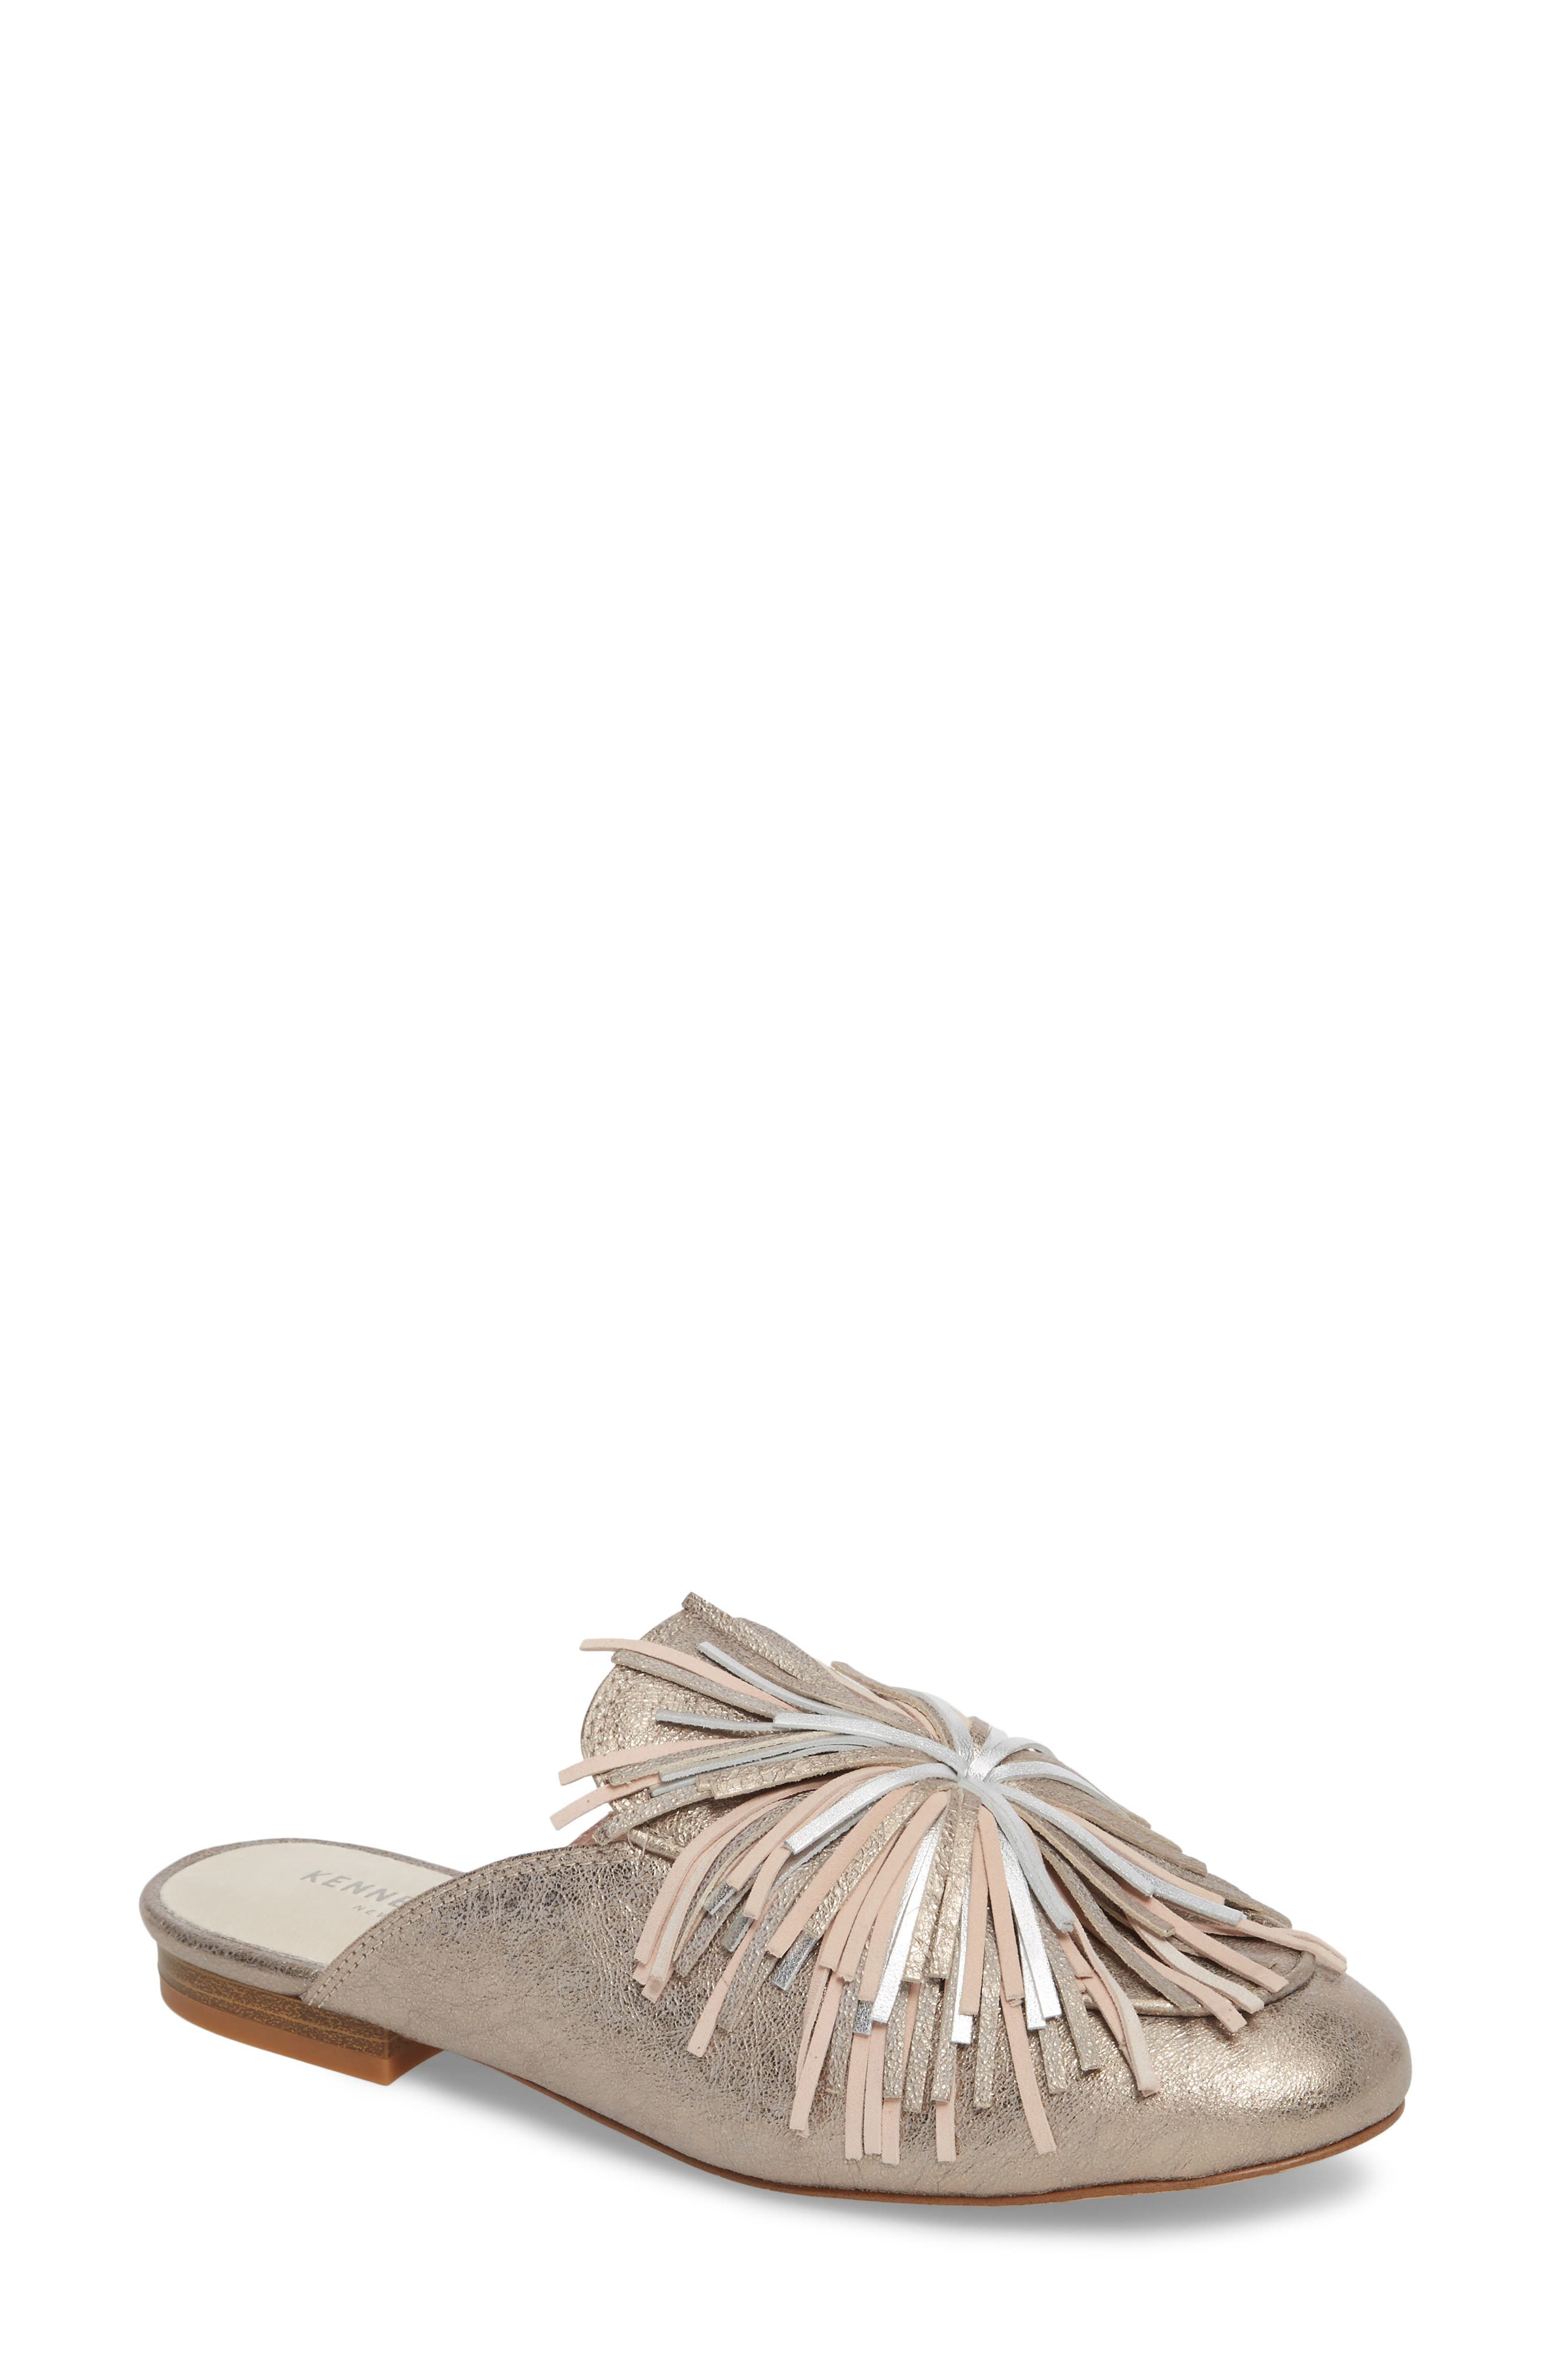 Wallice Firework Fringe Loafer Mule,                             Main thumbnail 1, color,                             Dark Rose Metallic Leather